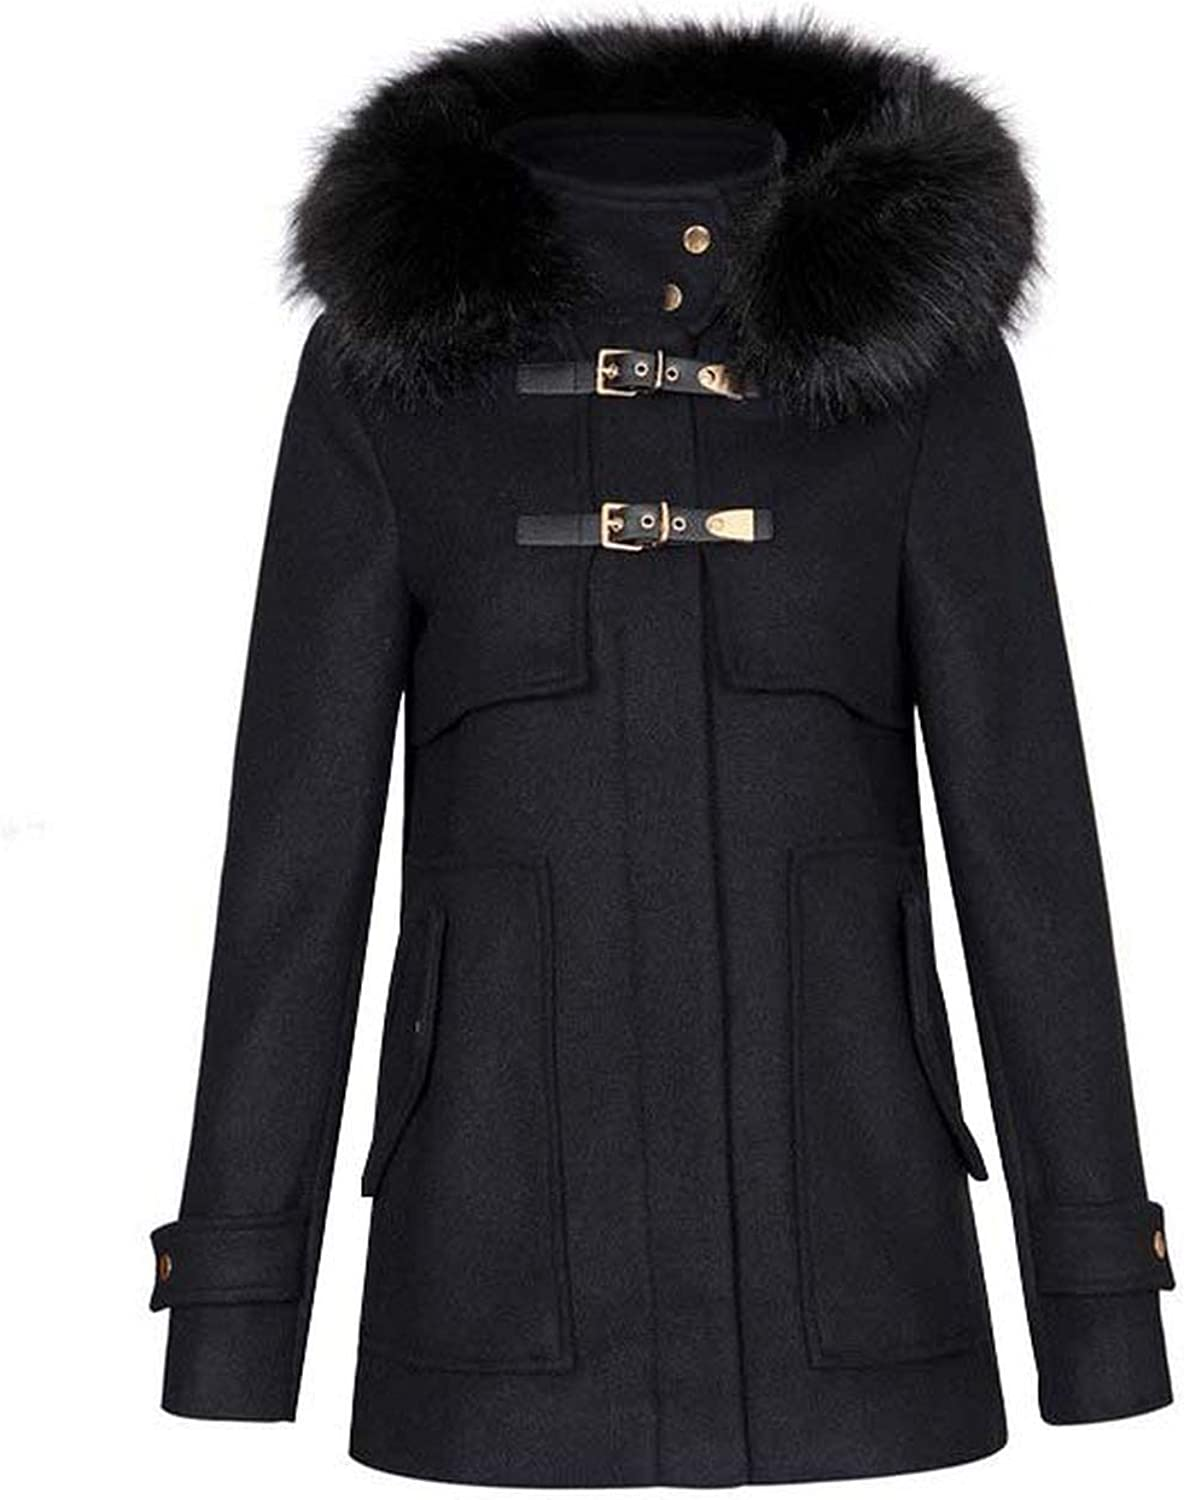 I'm good at you Women Winter Warm Long Woolen Coat Thick Black Faux Fur Hooded Buckle Outerwear